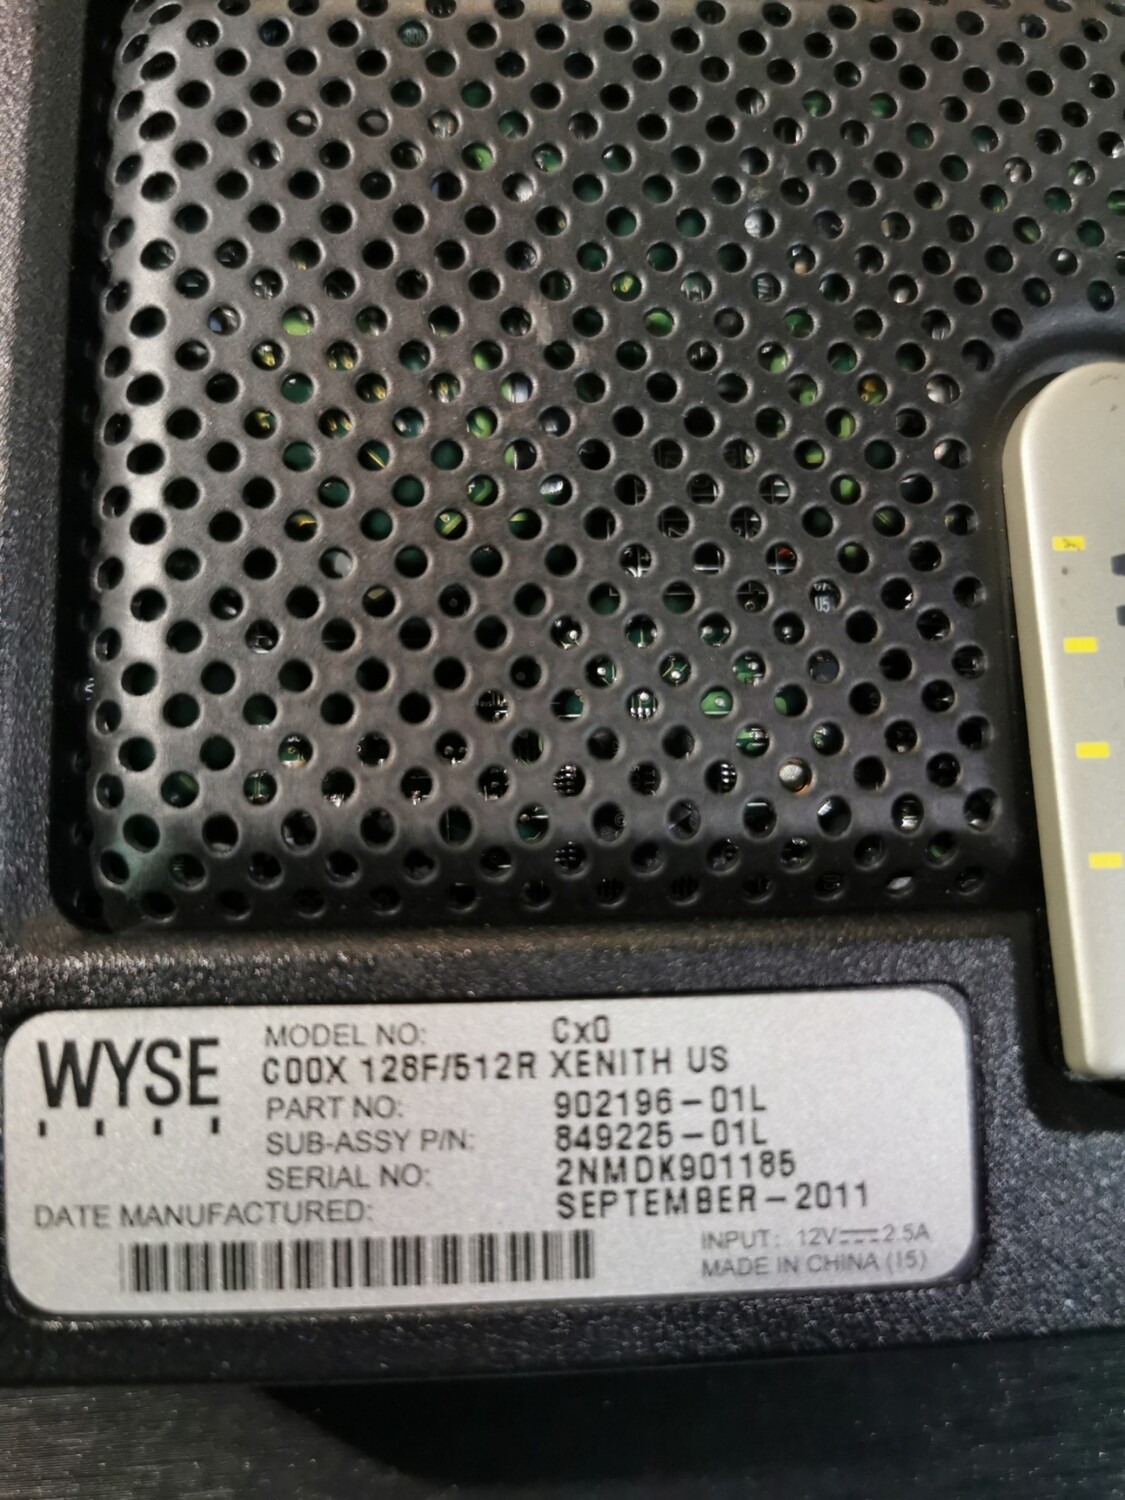 902196-01L | WYSE THIN CLIENT 128F/512R XENITH US | 849225-01L